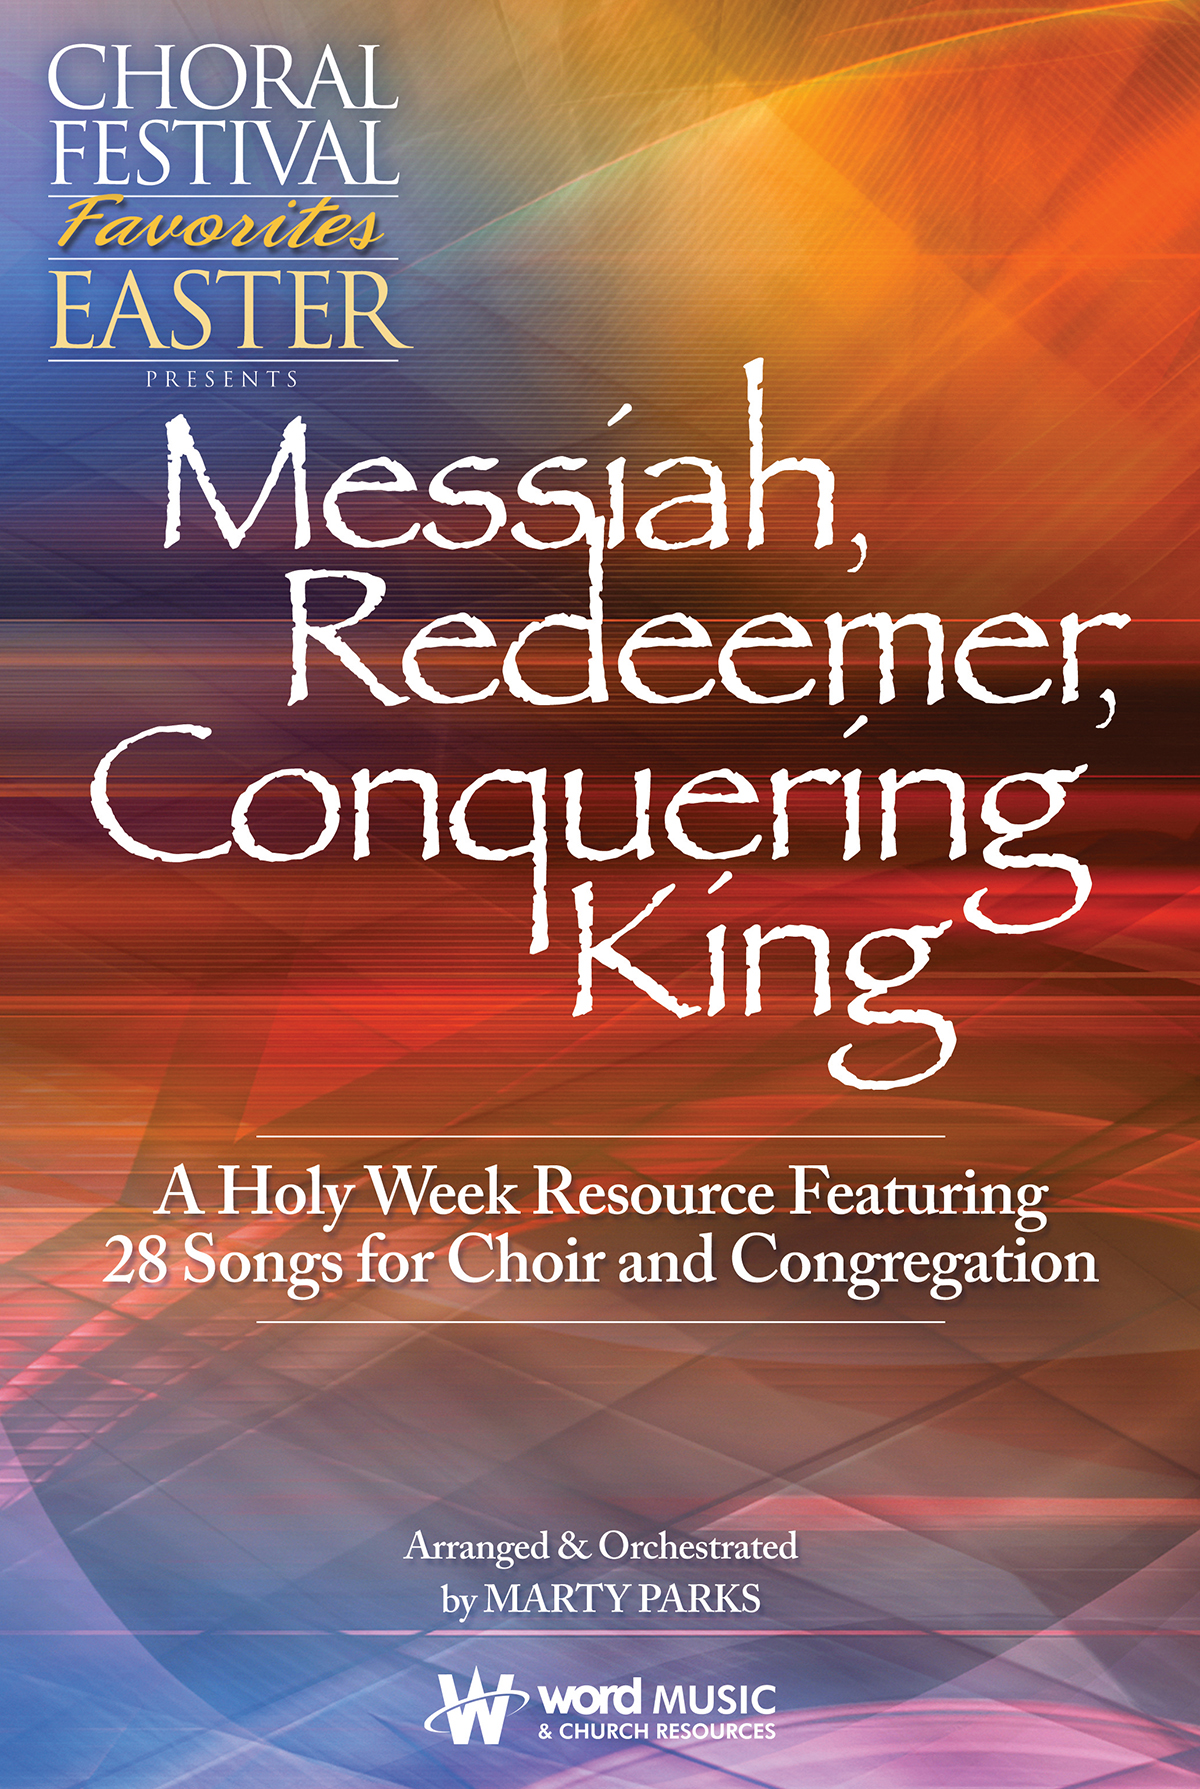 Messiah, Redeemer, Conquering King